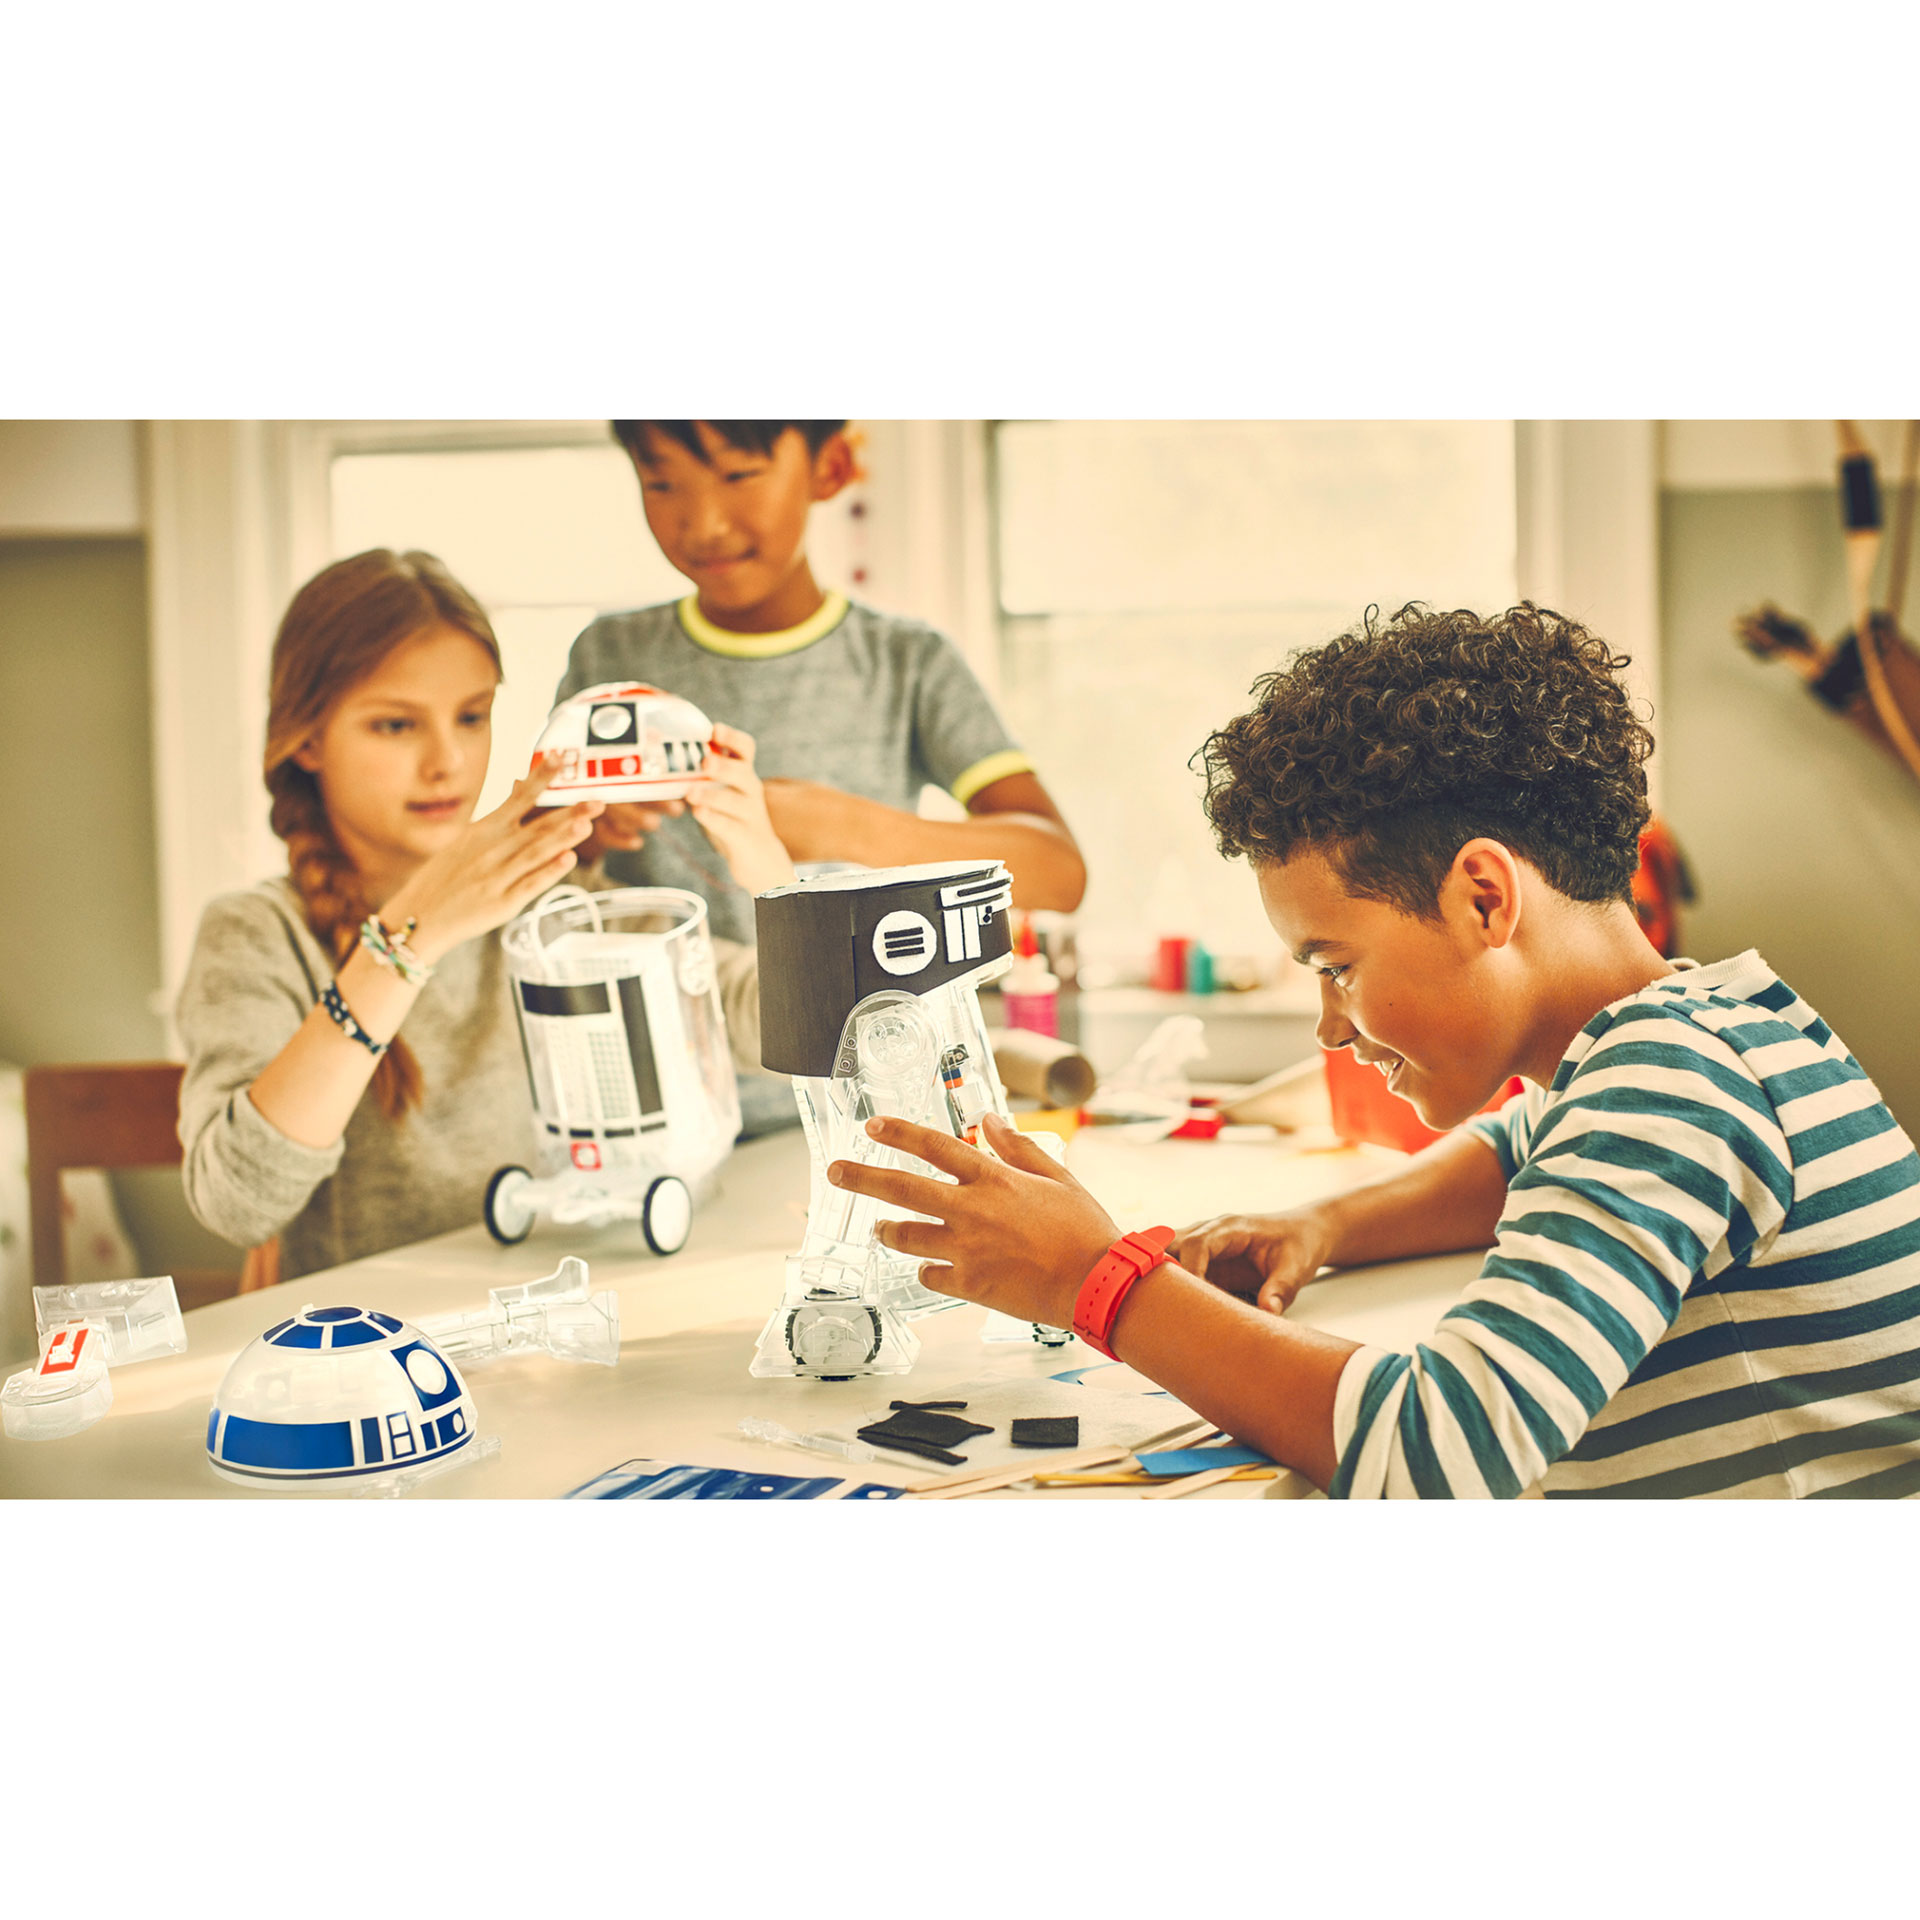 Littlebits Star Wars R2 D2 Droid Inventor Kit Fun Way For Kids To Build Circuits And Make Things They